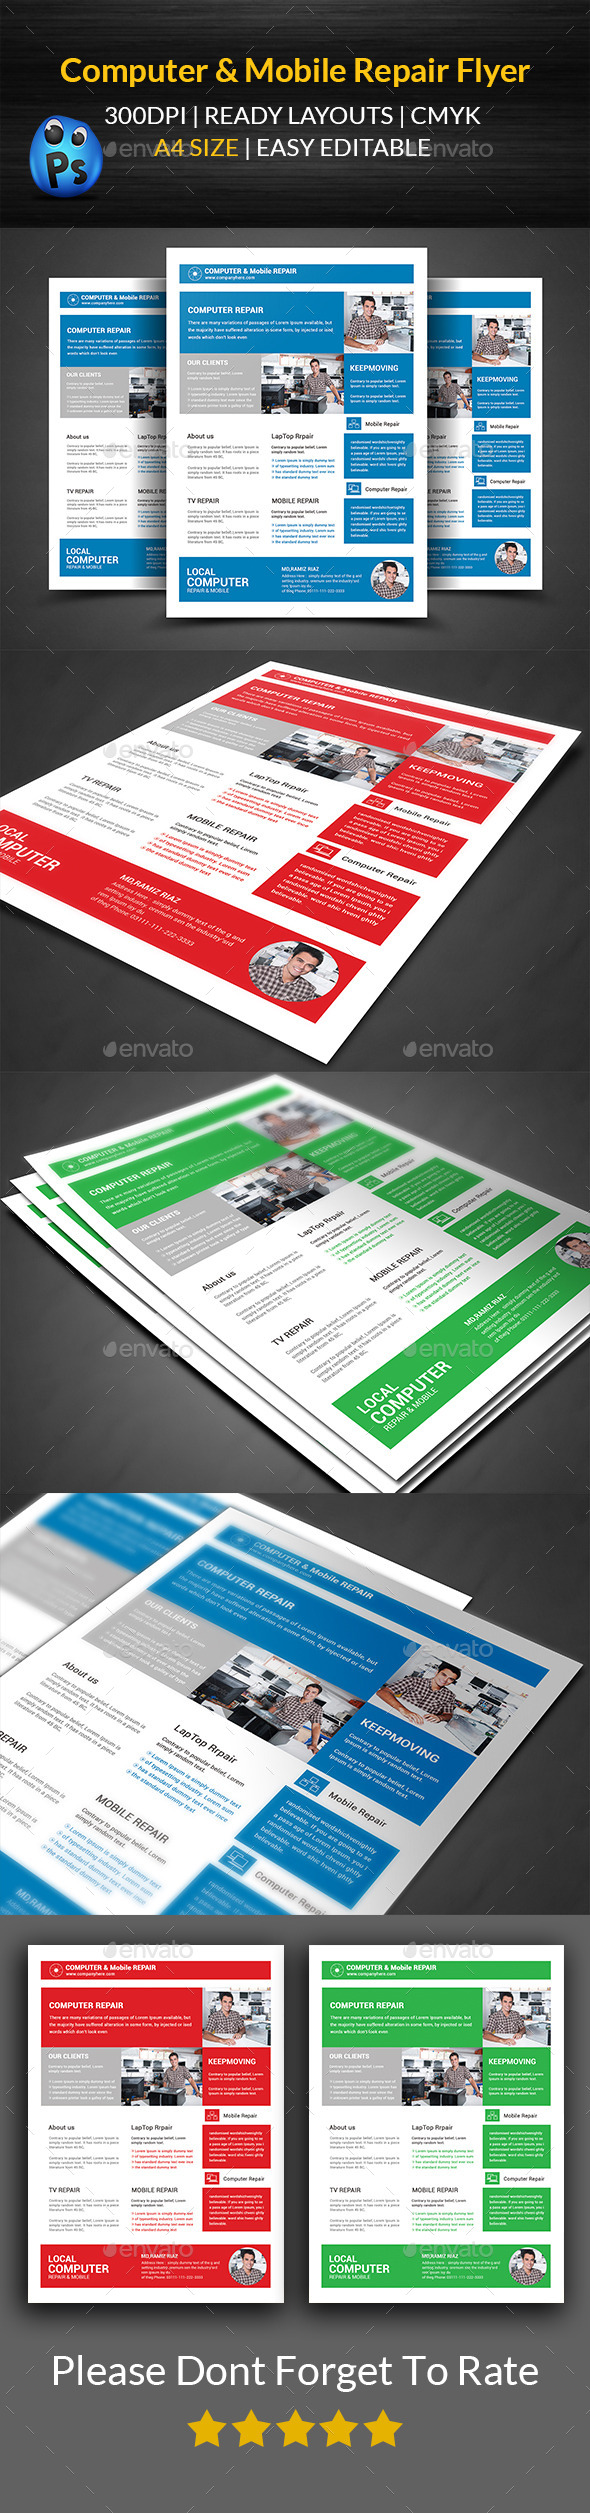 Computer & Mobile Repair Flyer Template  - Corporate Flyers